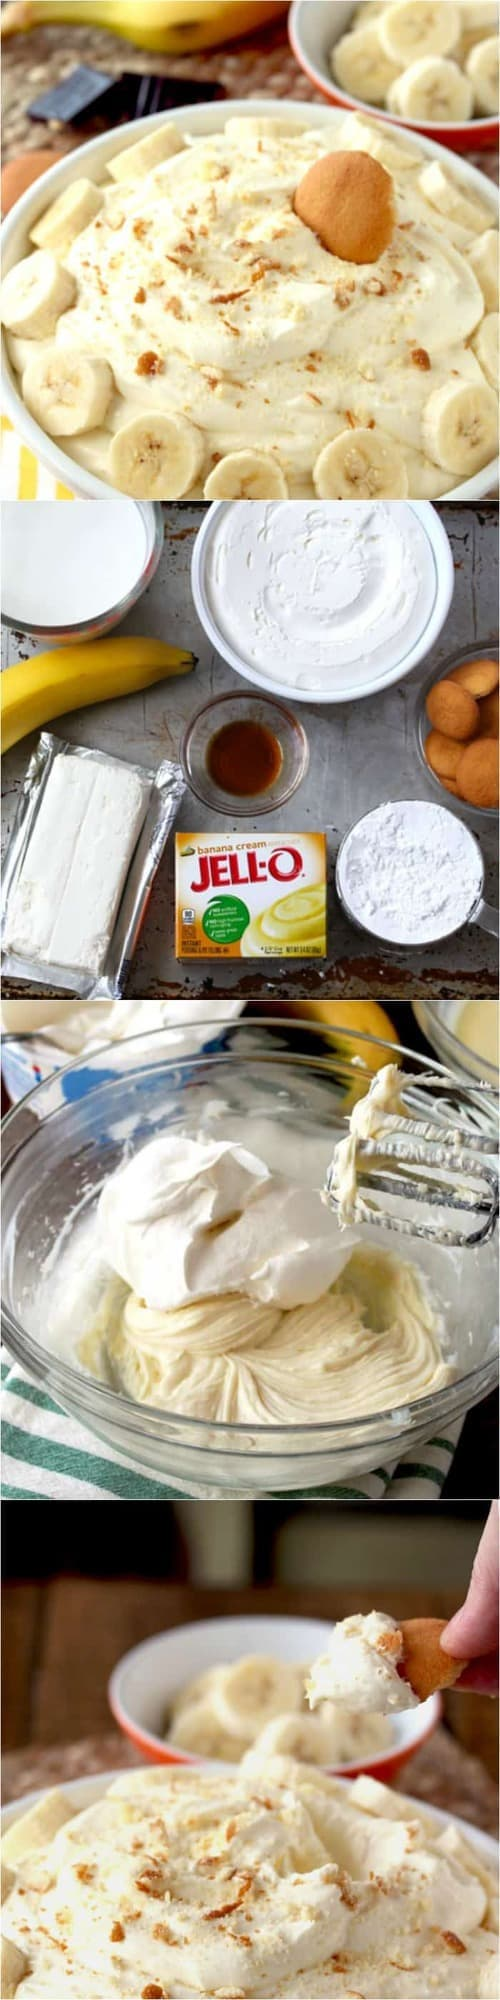 How to make Banana Cream Pie Dip